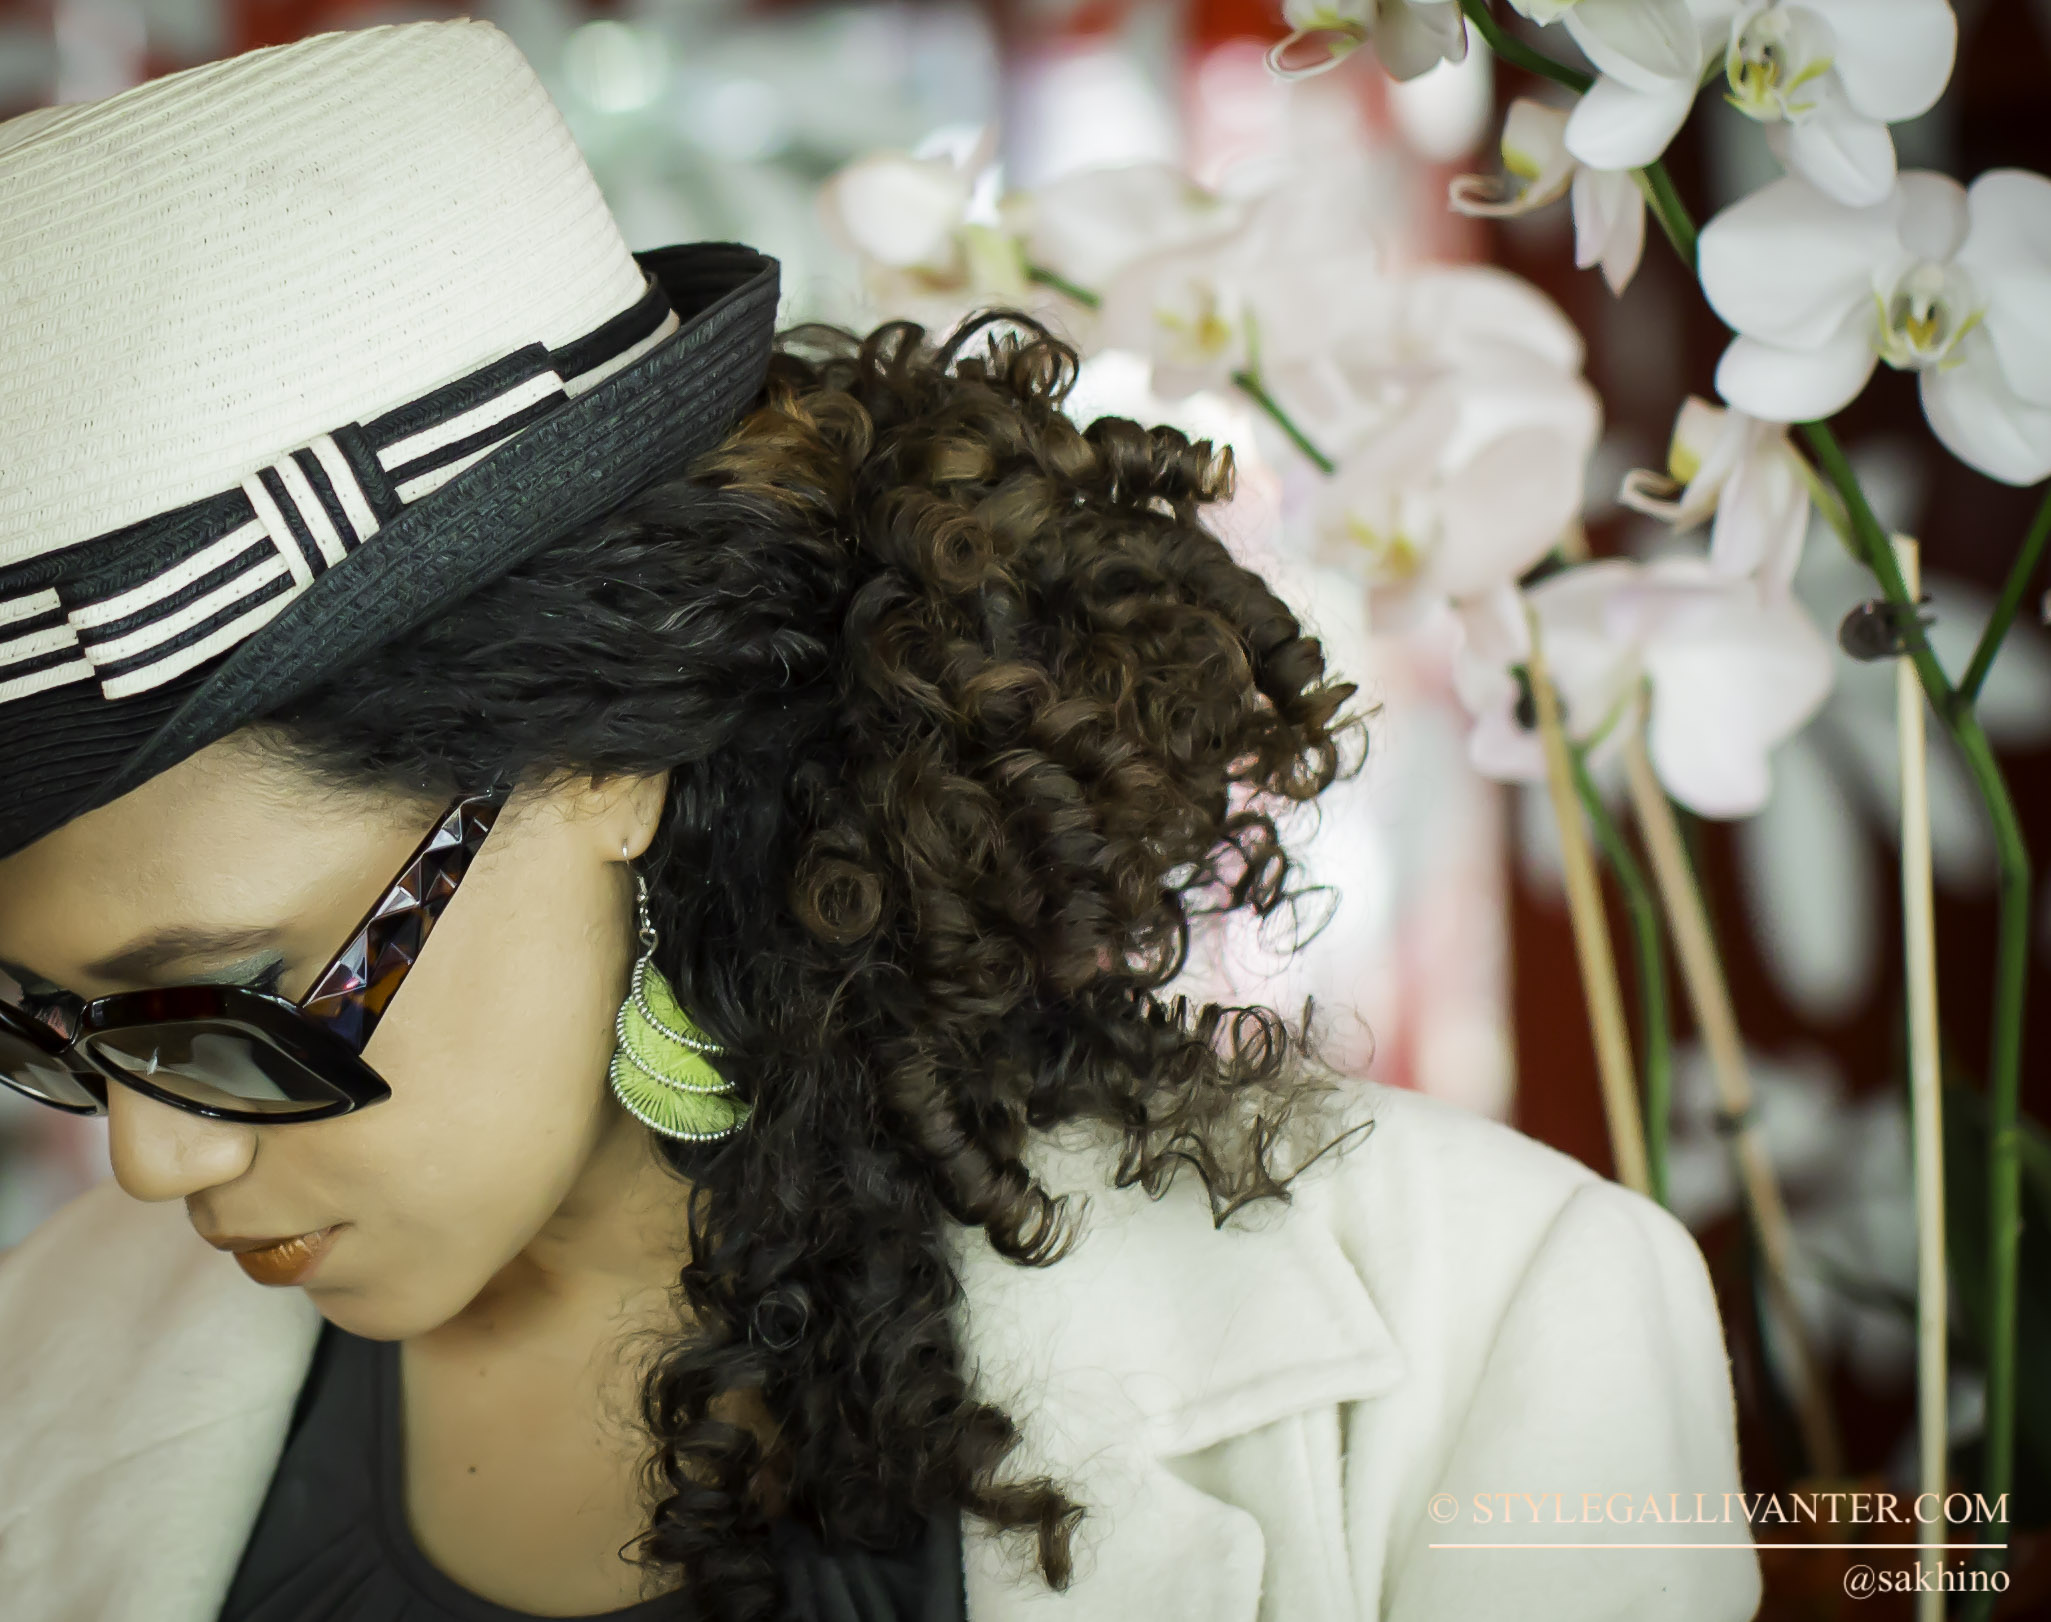 tp-mummy-bloggers-melbourne-australia_stylish-mummy-bloggers-2015_trilby_Miranda-StyleGallivanter.com_Photo-Credit-Andrew-Kibuka_copyright-2015-7